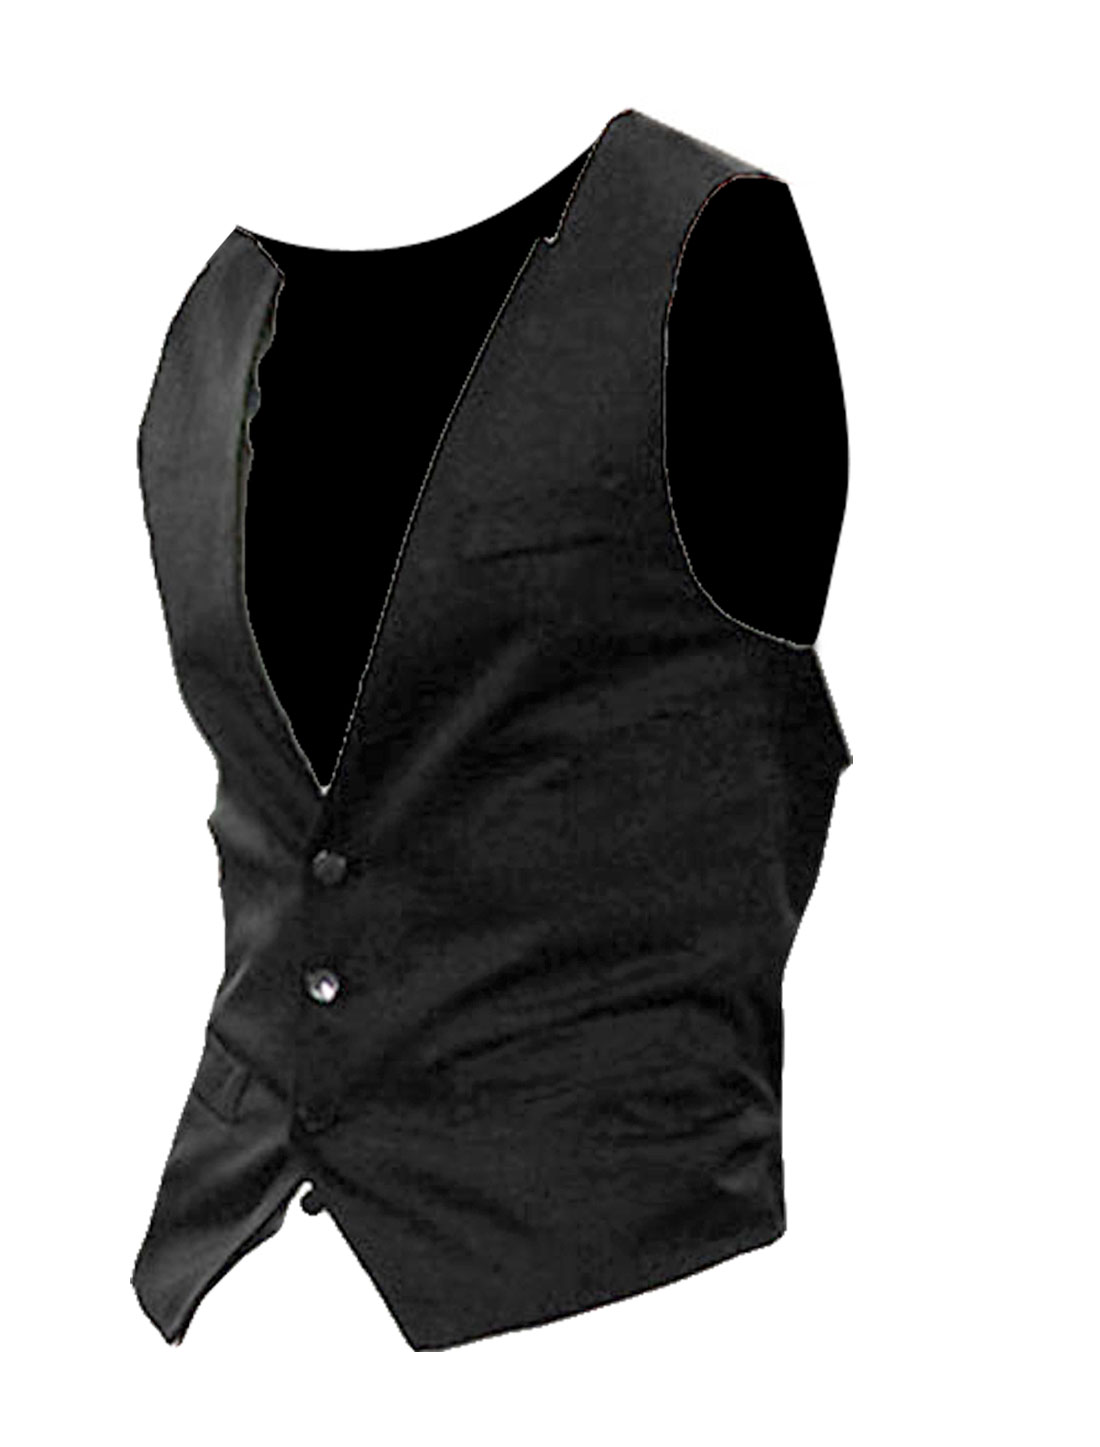 Mens Black Sleeveless Decorative Pockets Adjustable Buckle Back Vest S